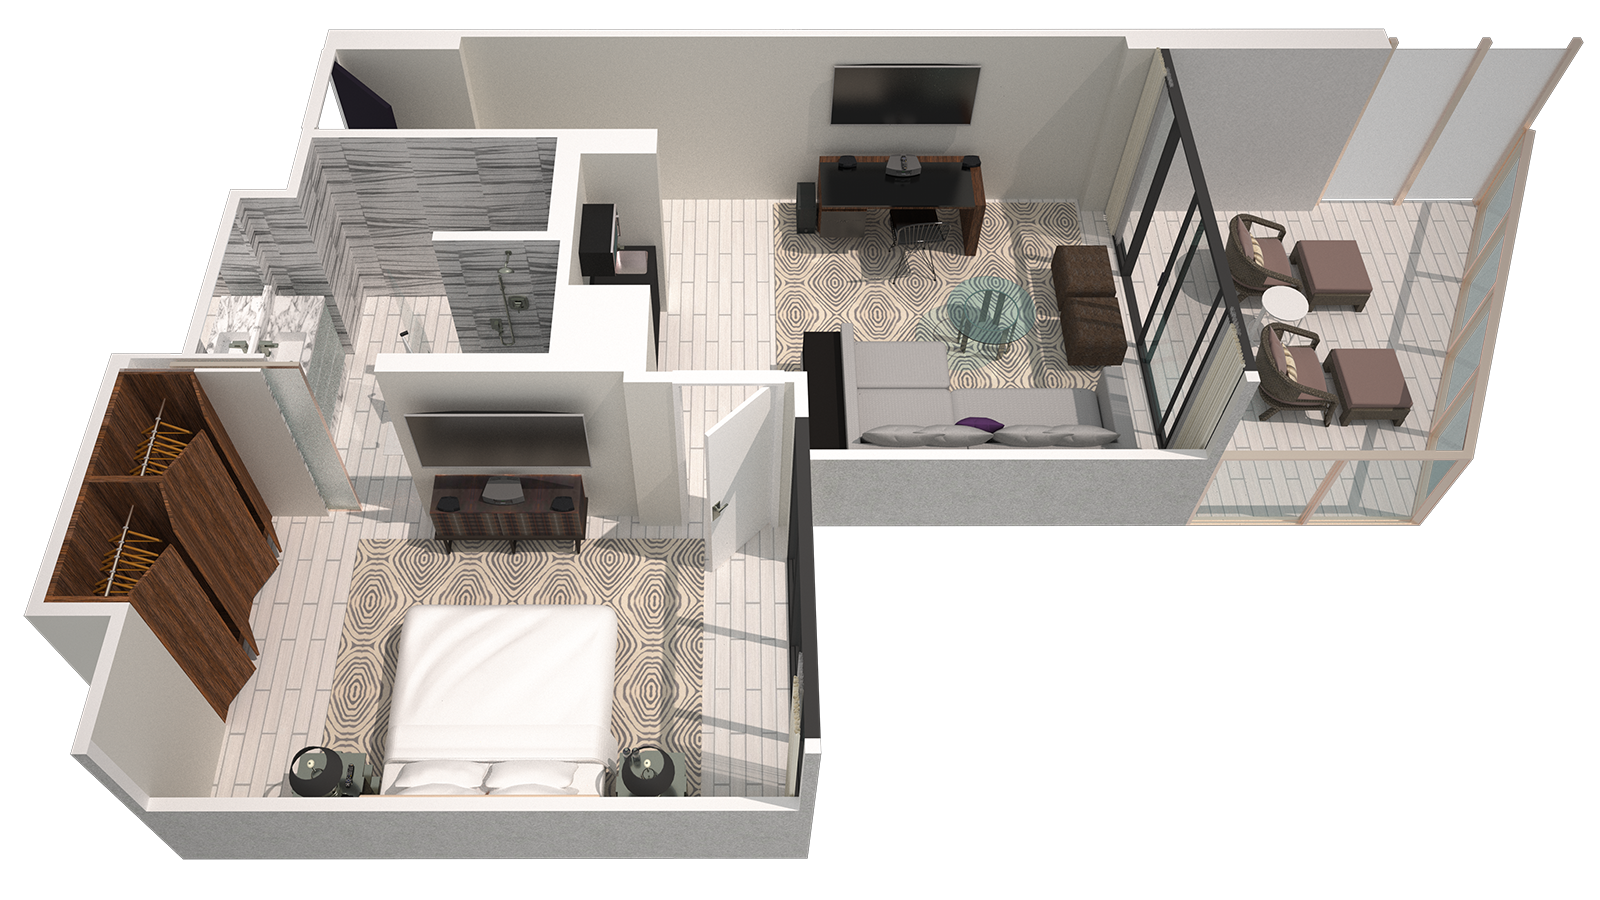 fantastic 2 room flat floor plan. Download floor plan Hotel Suites in Miami  W South Beach